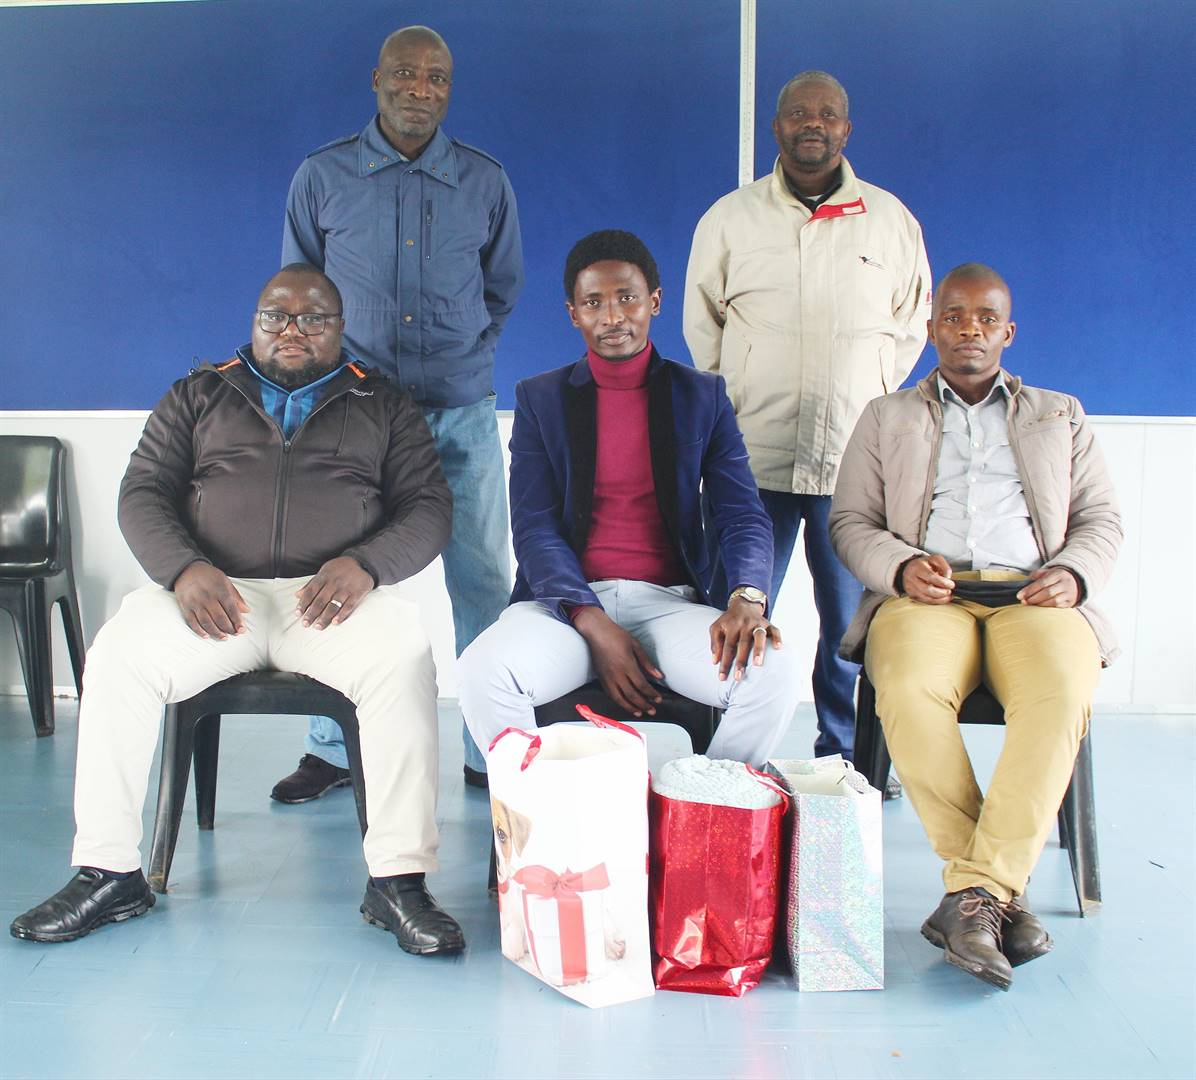 photo: suppliedTeachers from Sisekelo High School (front row, from left) principal Mr NO Khanyile, Bayanda Zungu(out-going teacher) with his farewell presents, (back fron left)Mr SM Magubane Mc of the day, and school governing body members (back row from left) Mr Mhlongo and Mr Mkhize.